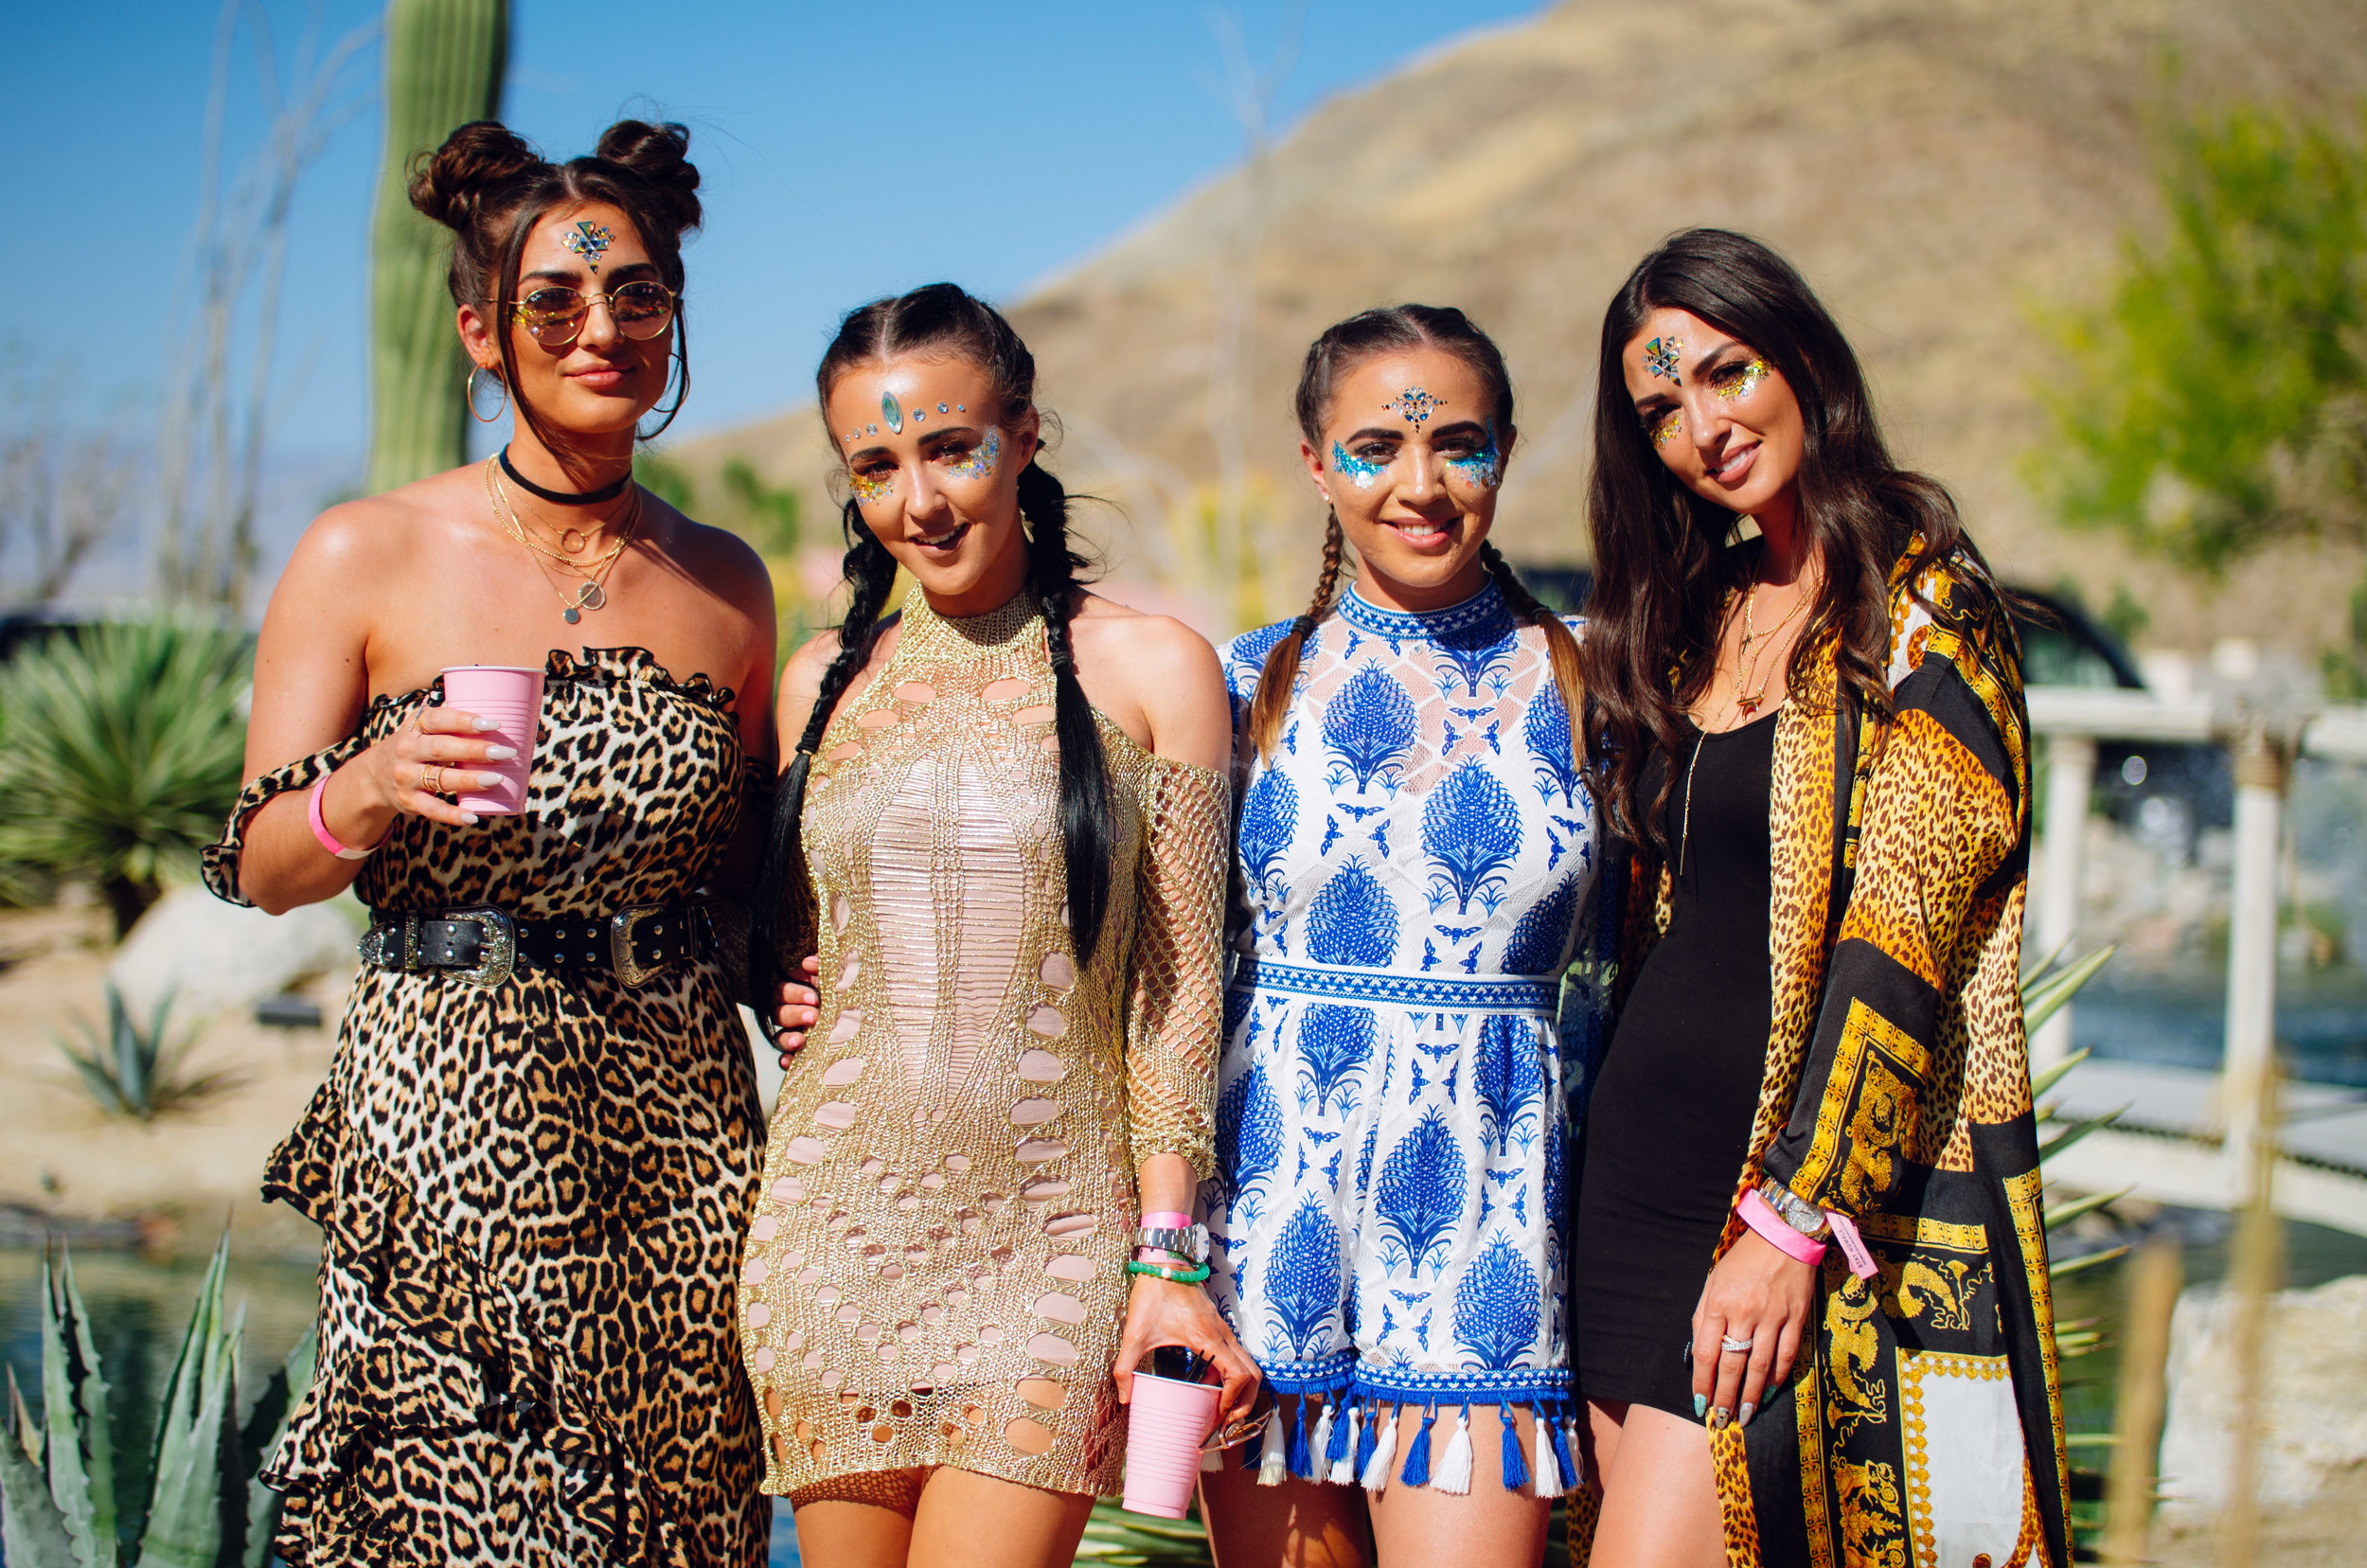 Ultimate Hollywood Coachella Poolside Party pretty girls having fun in the sun.jpg